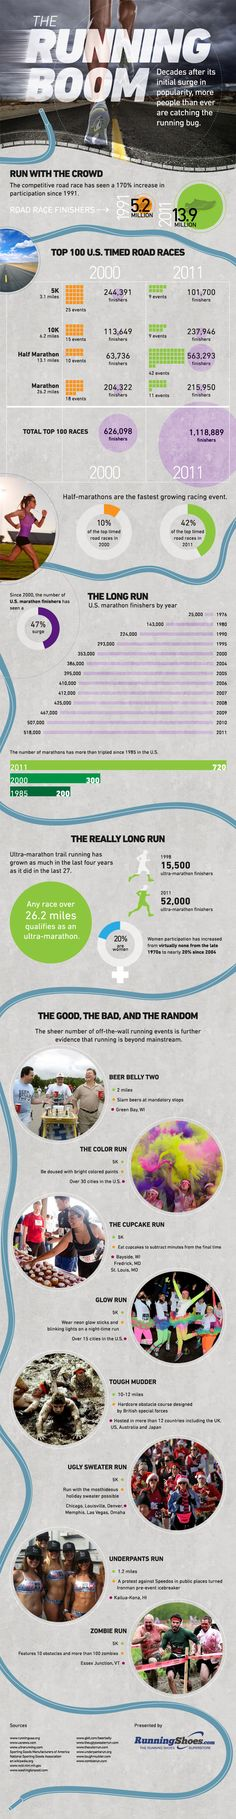 The Running Boom [Infographic]